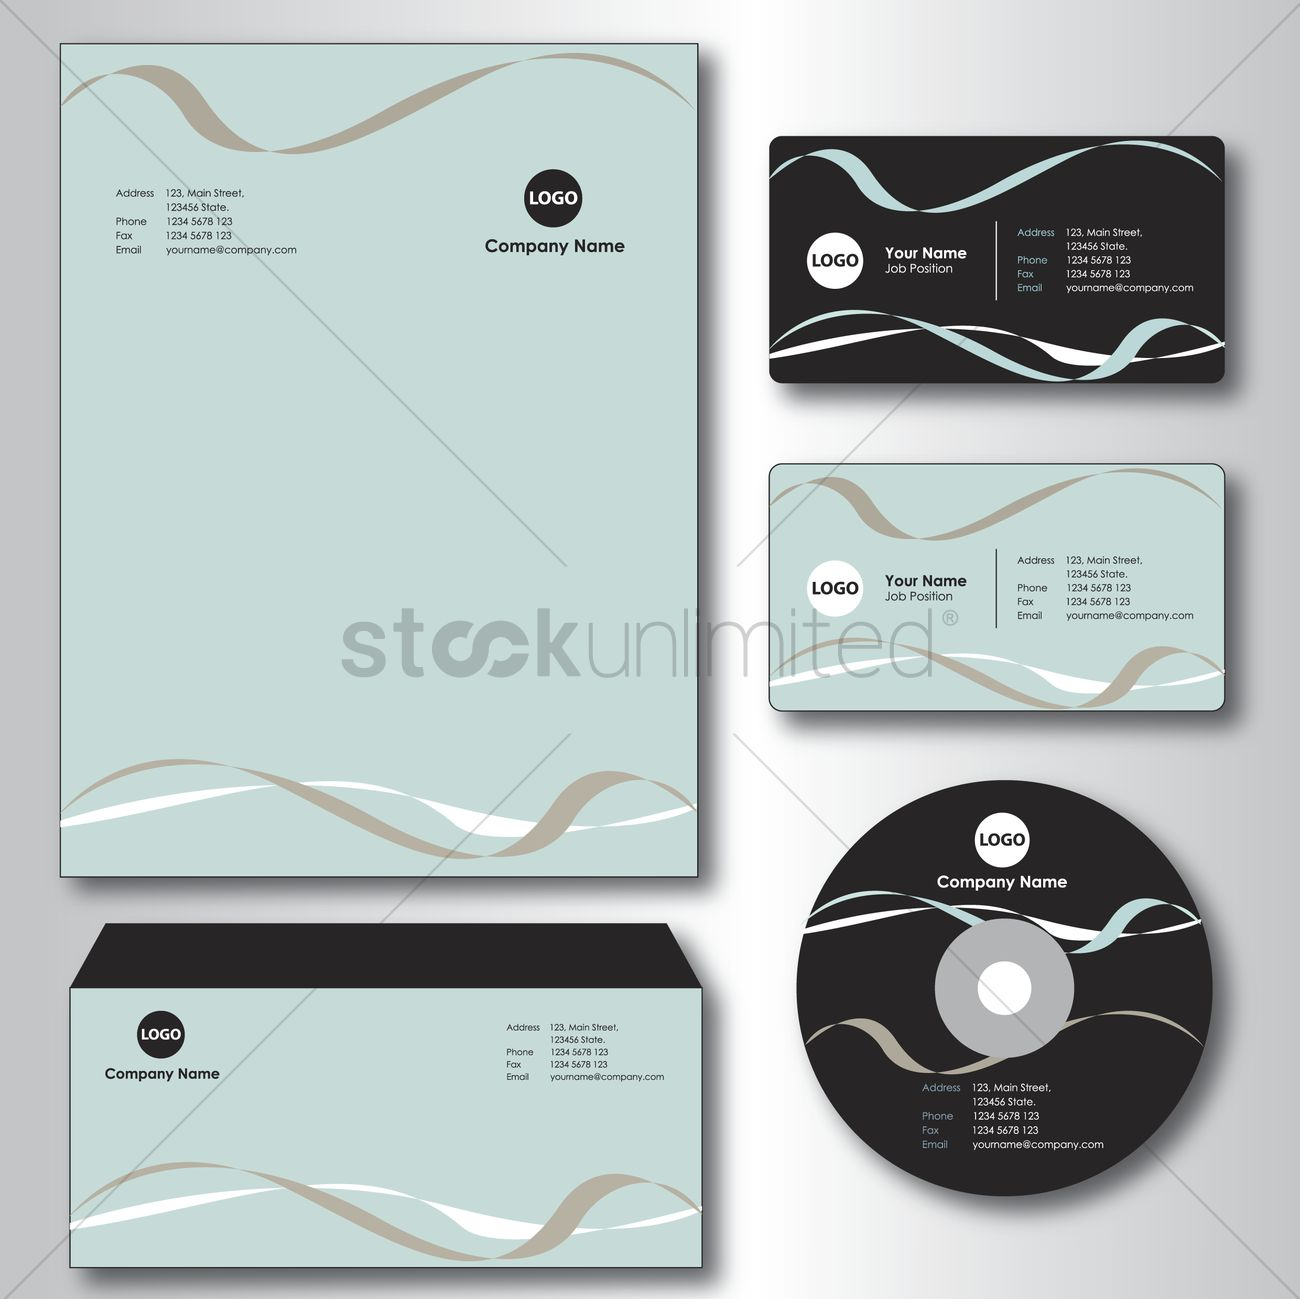 Company paper, envelope, business card and cd Vector Image - 1235428 ...